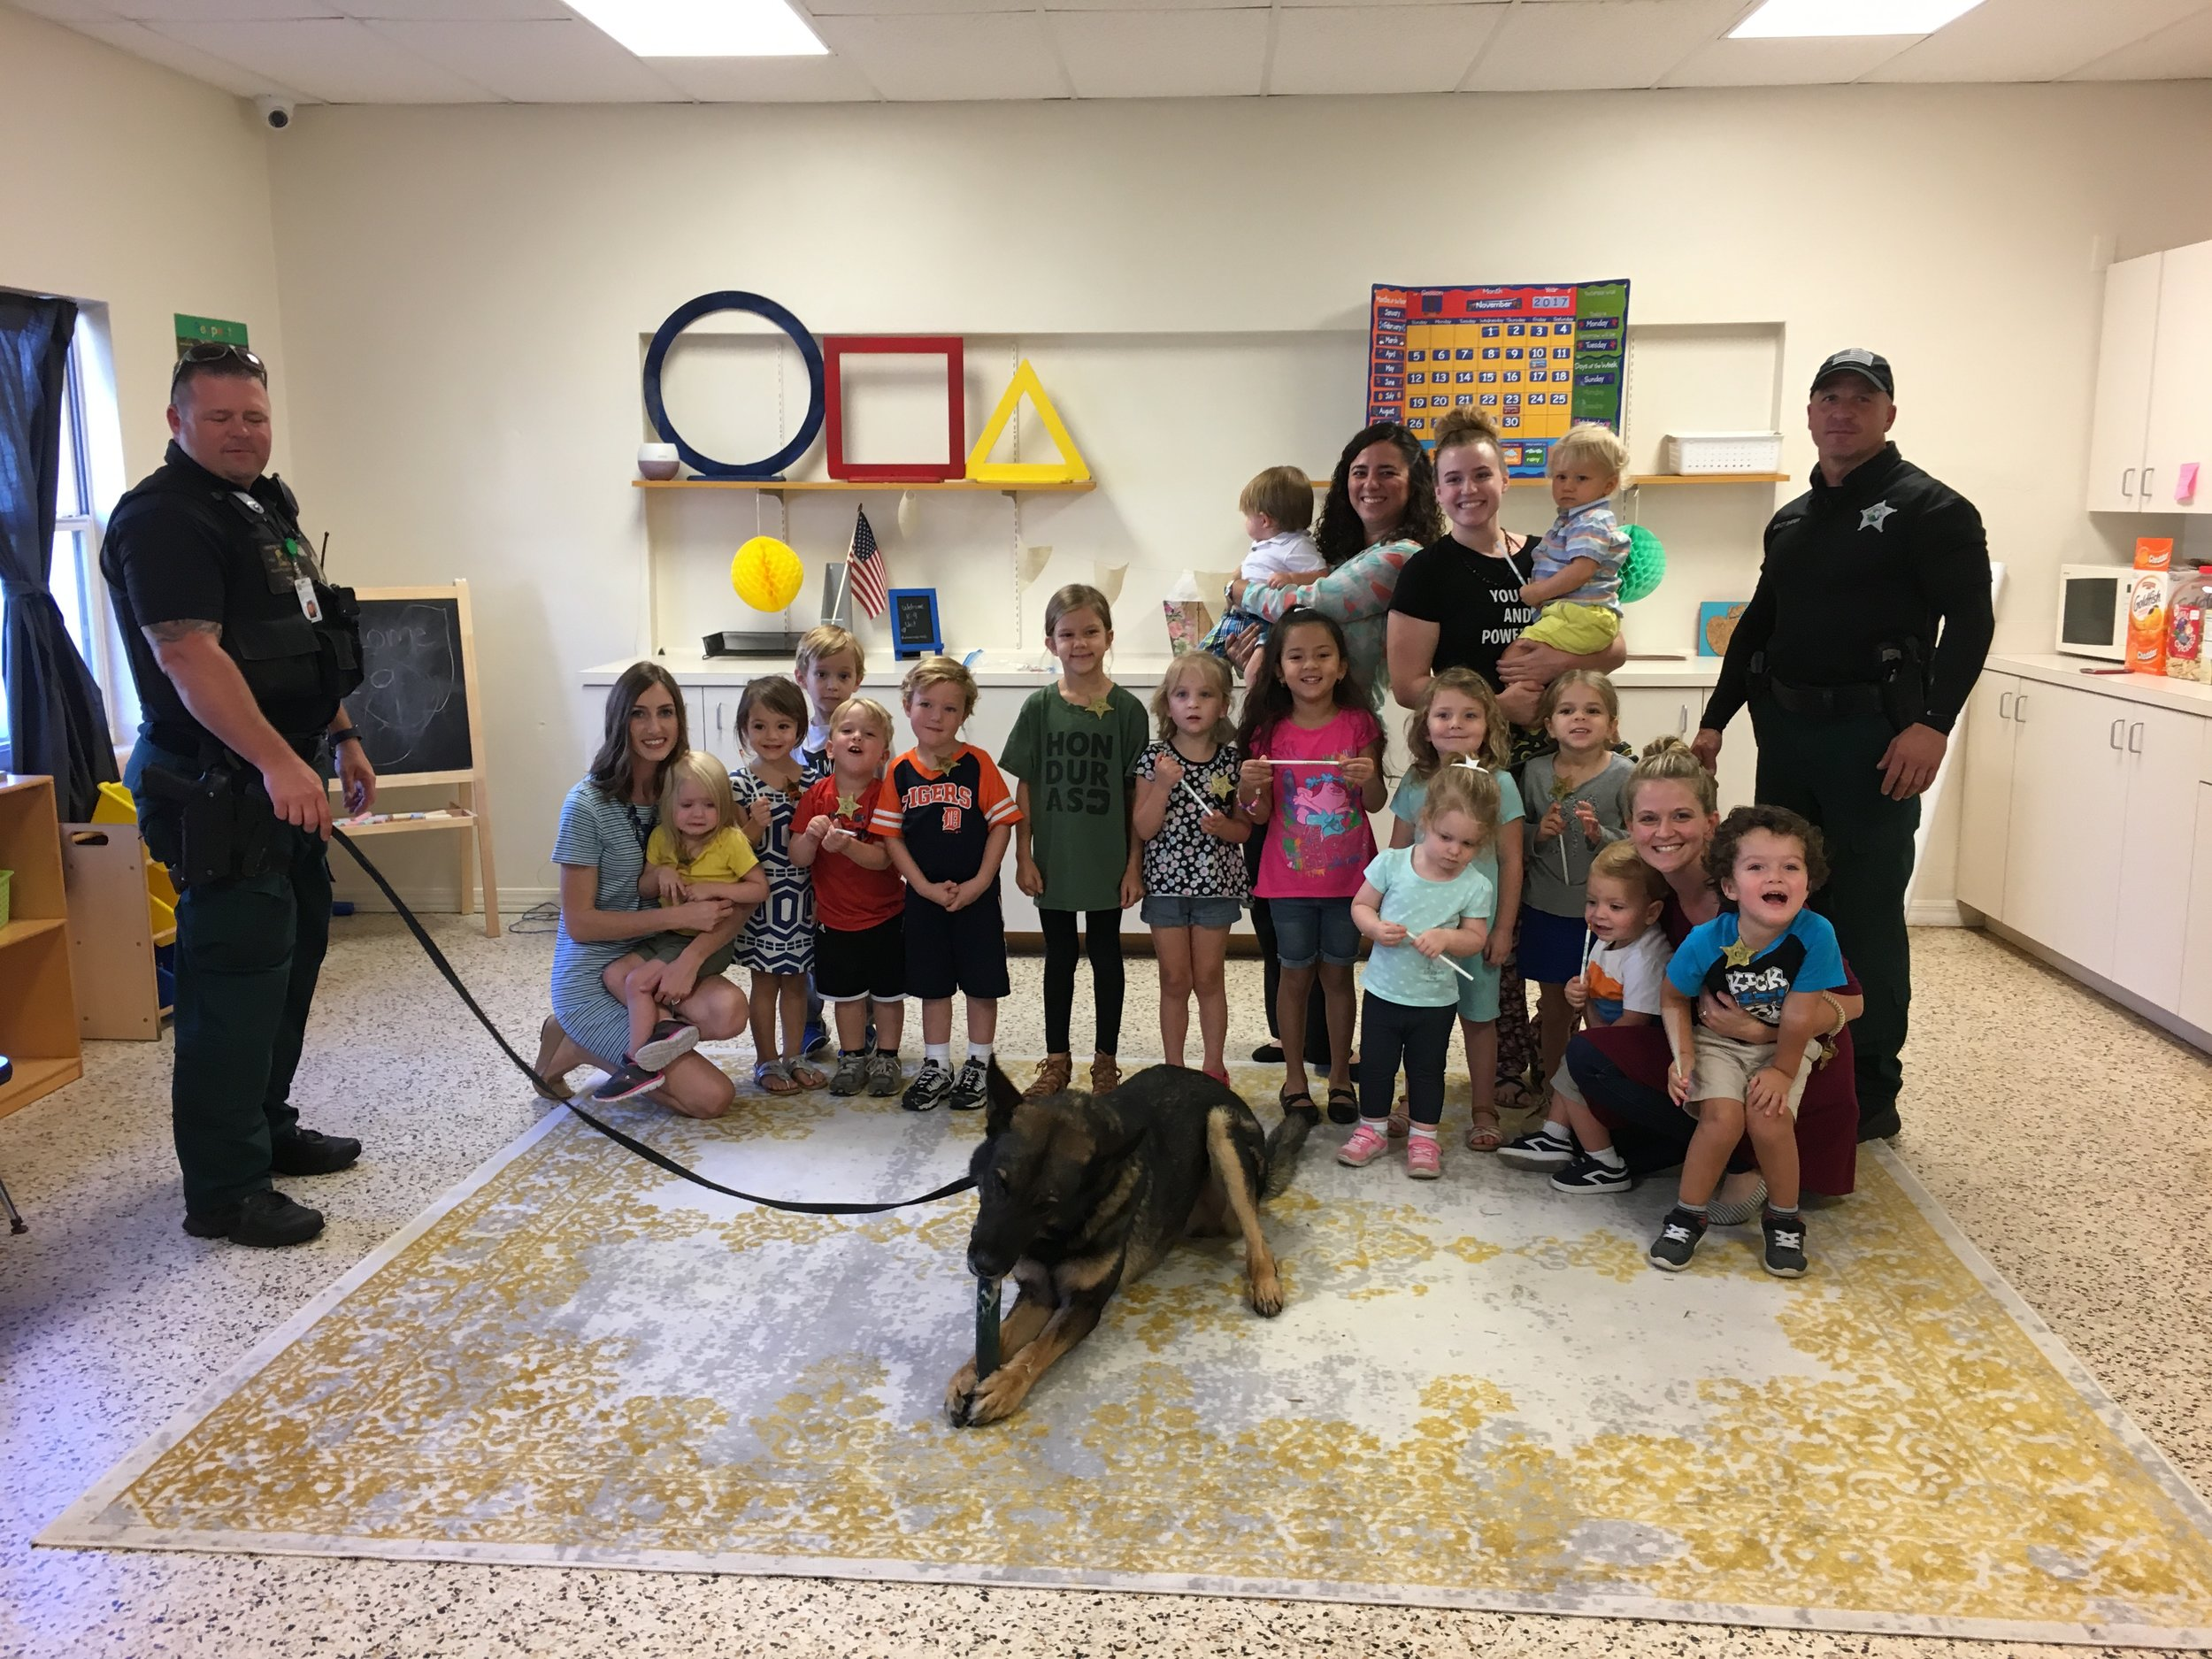 On November 8 we had the Winter Haven Police Department K-9 Unit come visit! The kids loved meeting Zorro the police dog and learning about the training the dogs go through to become officers!